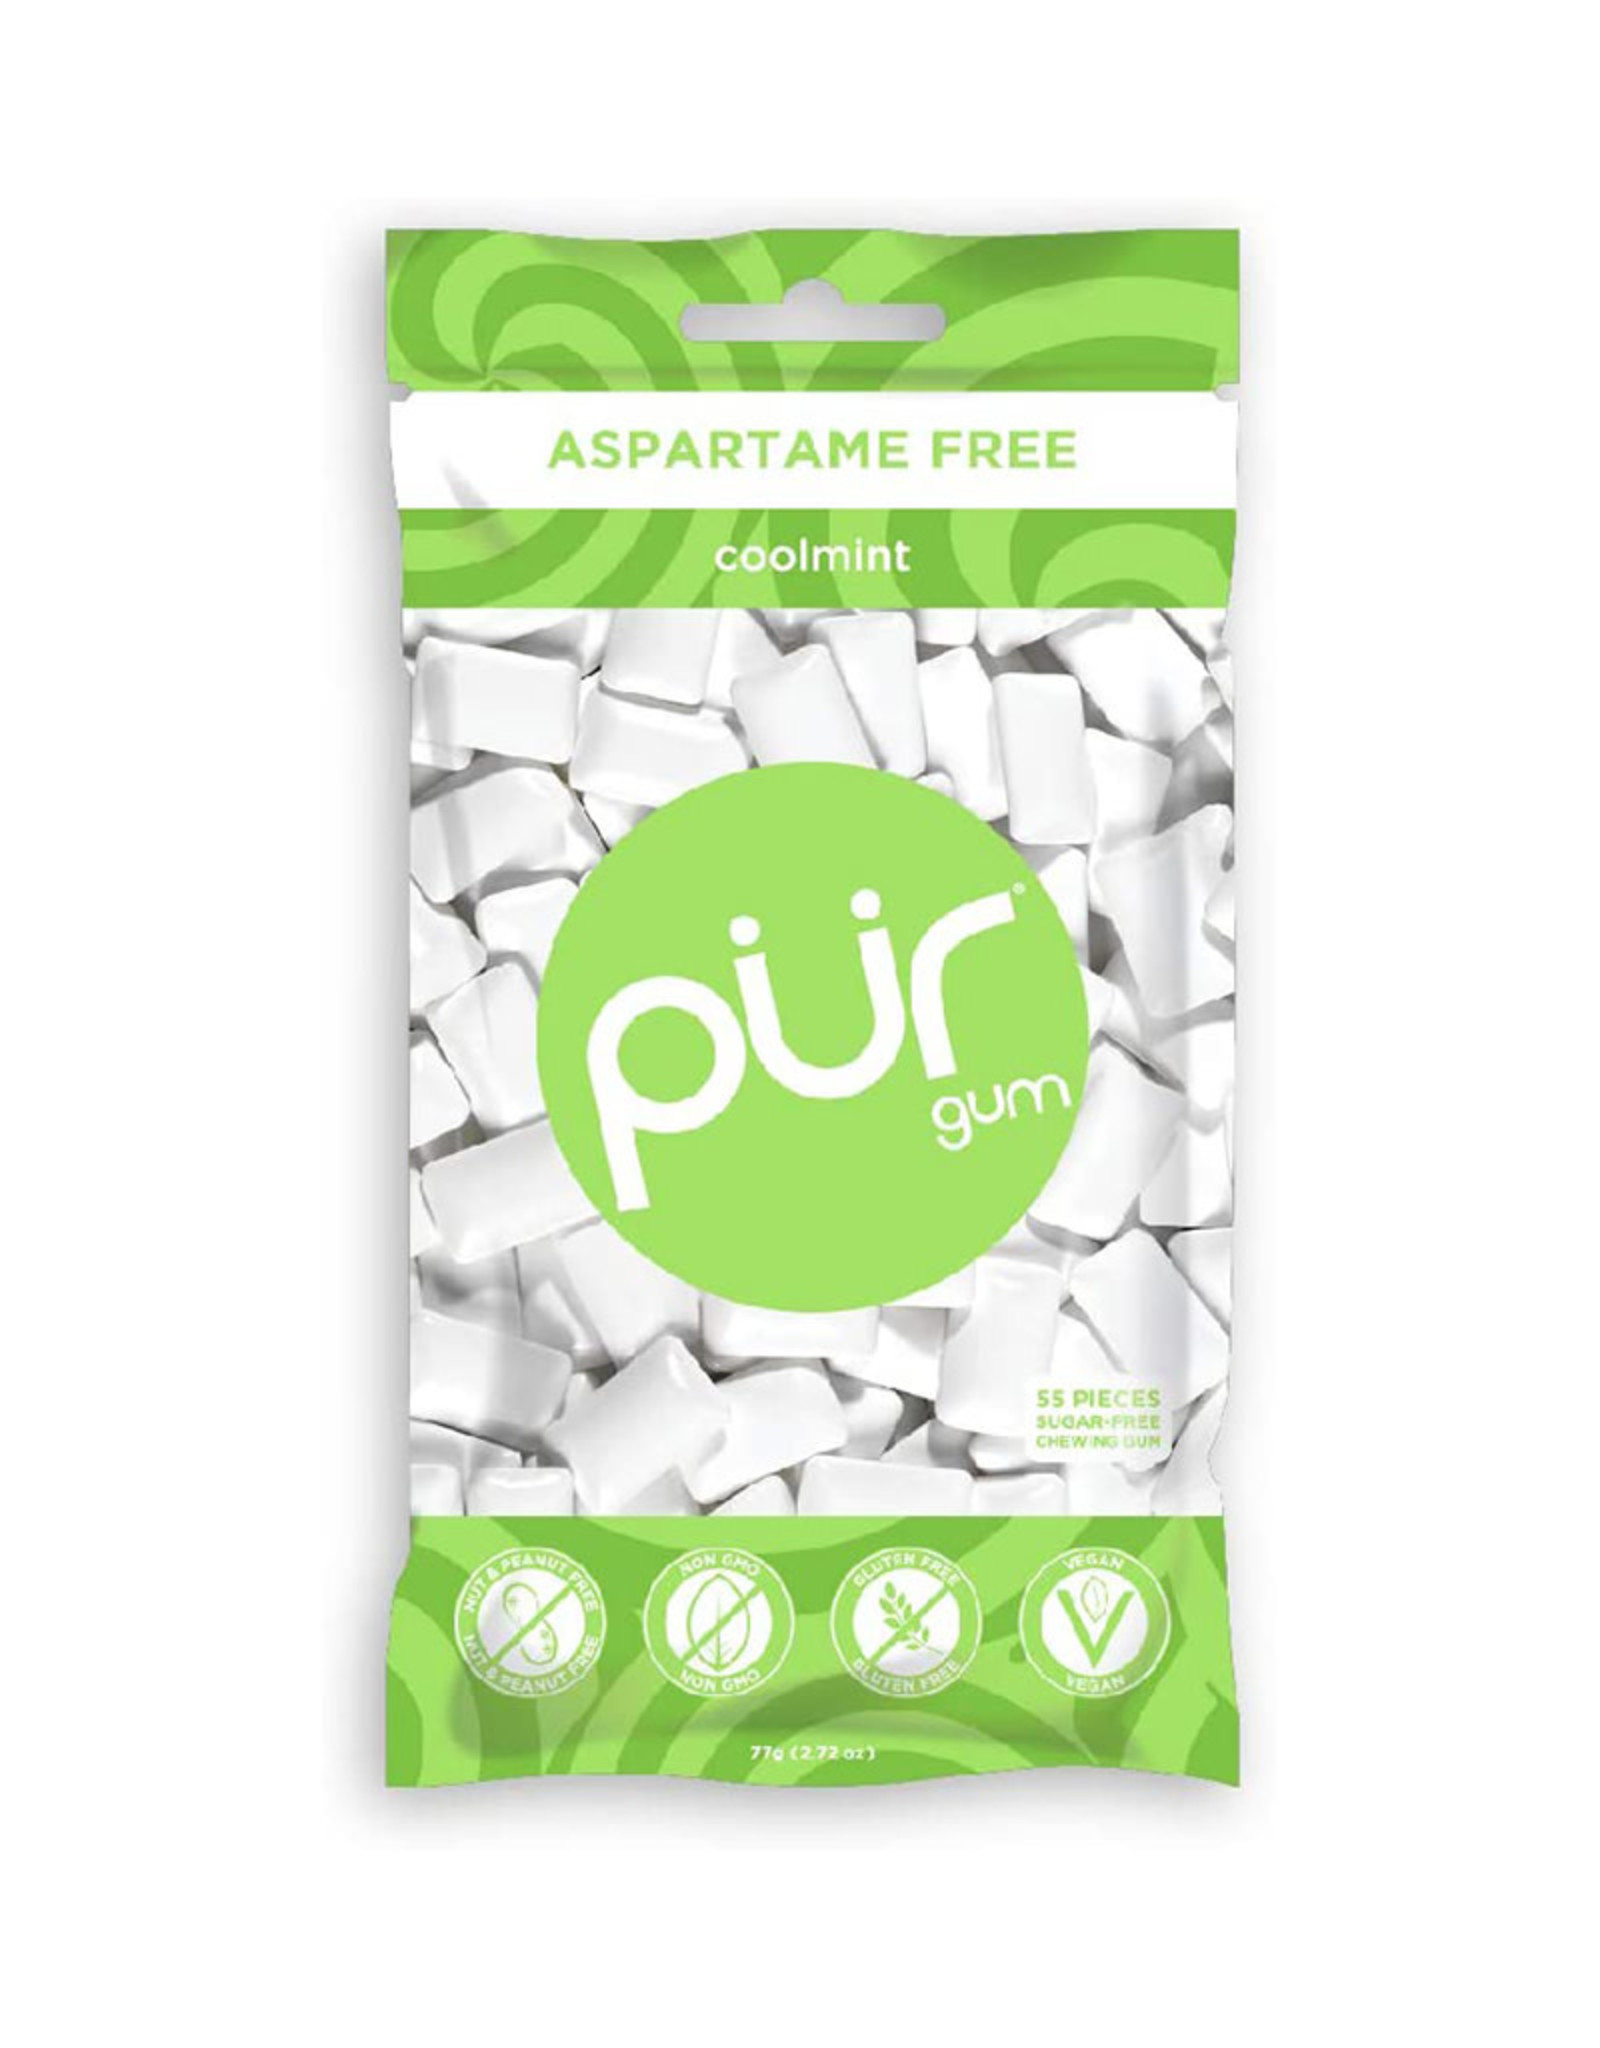 PUR PUR - Gum, Coolmint (Bag)